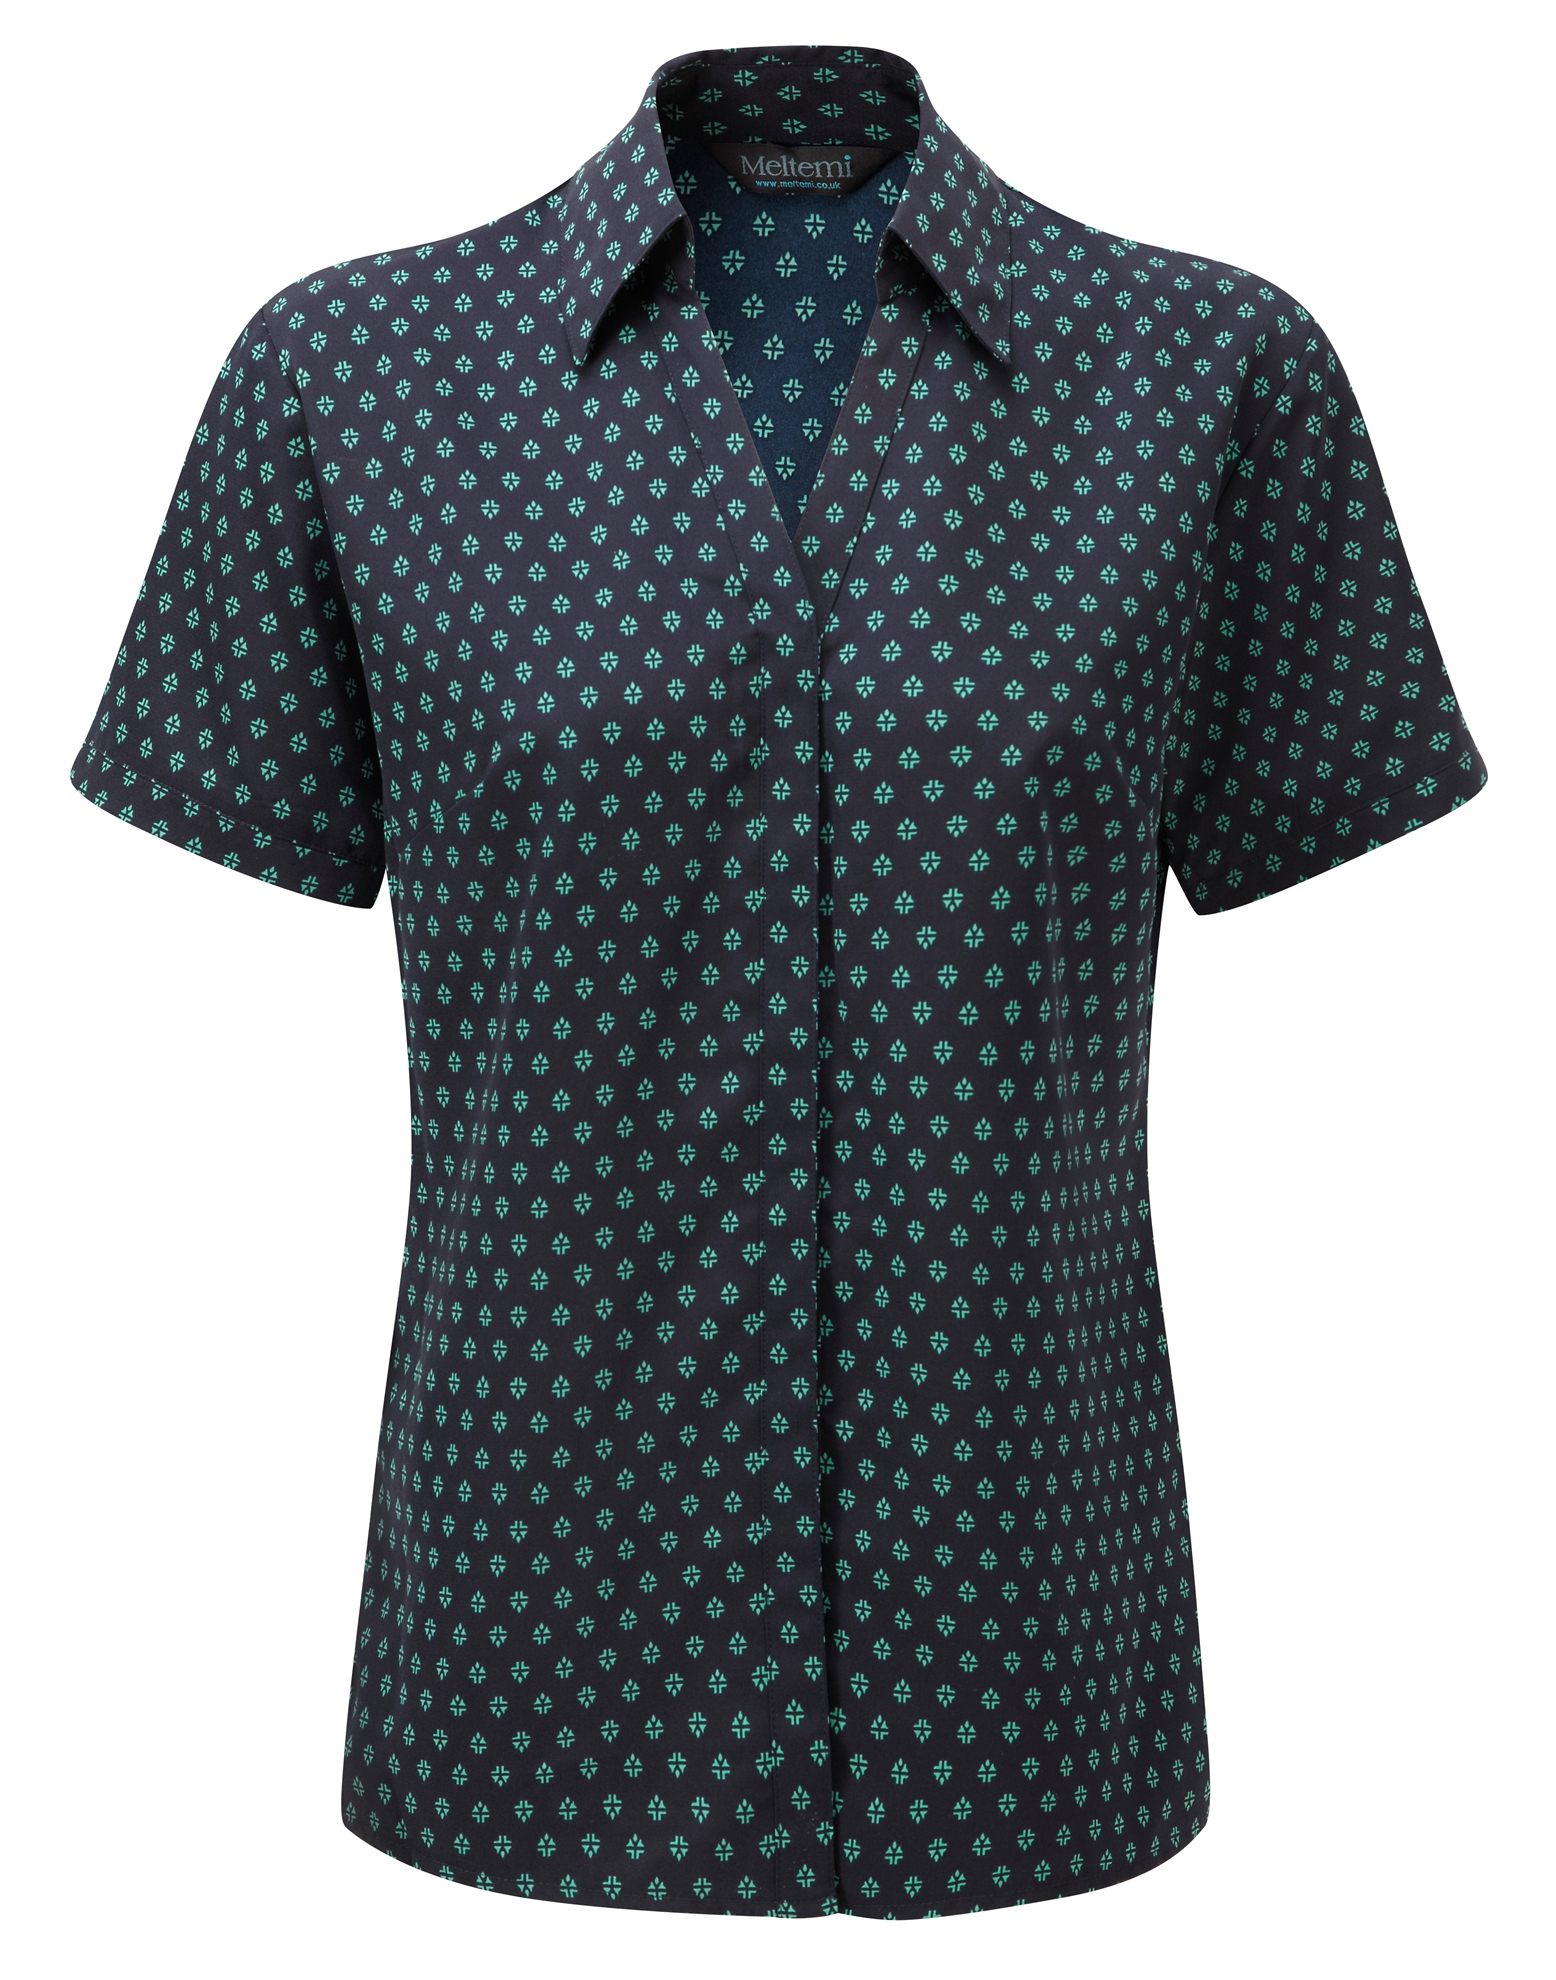 Picture of Semi-Fitted Polyester Blouse - Navy/Aqua Fleur Print